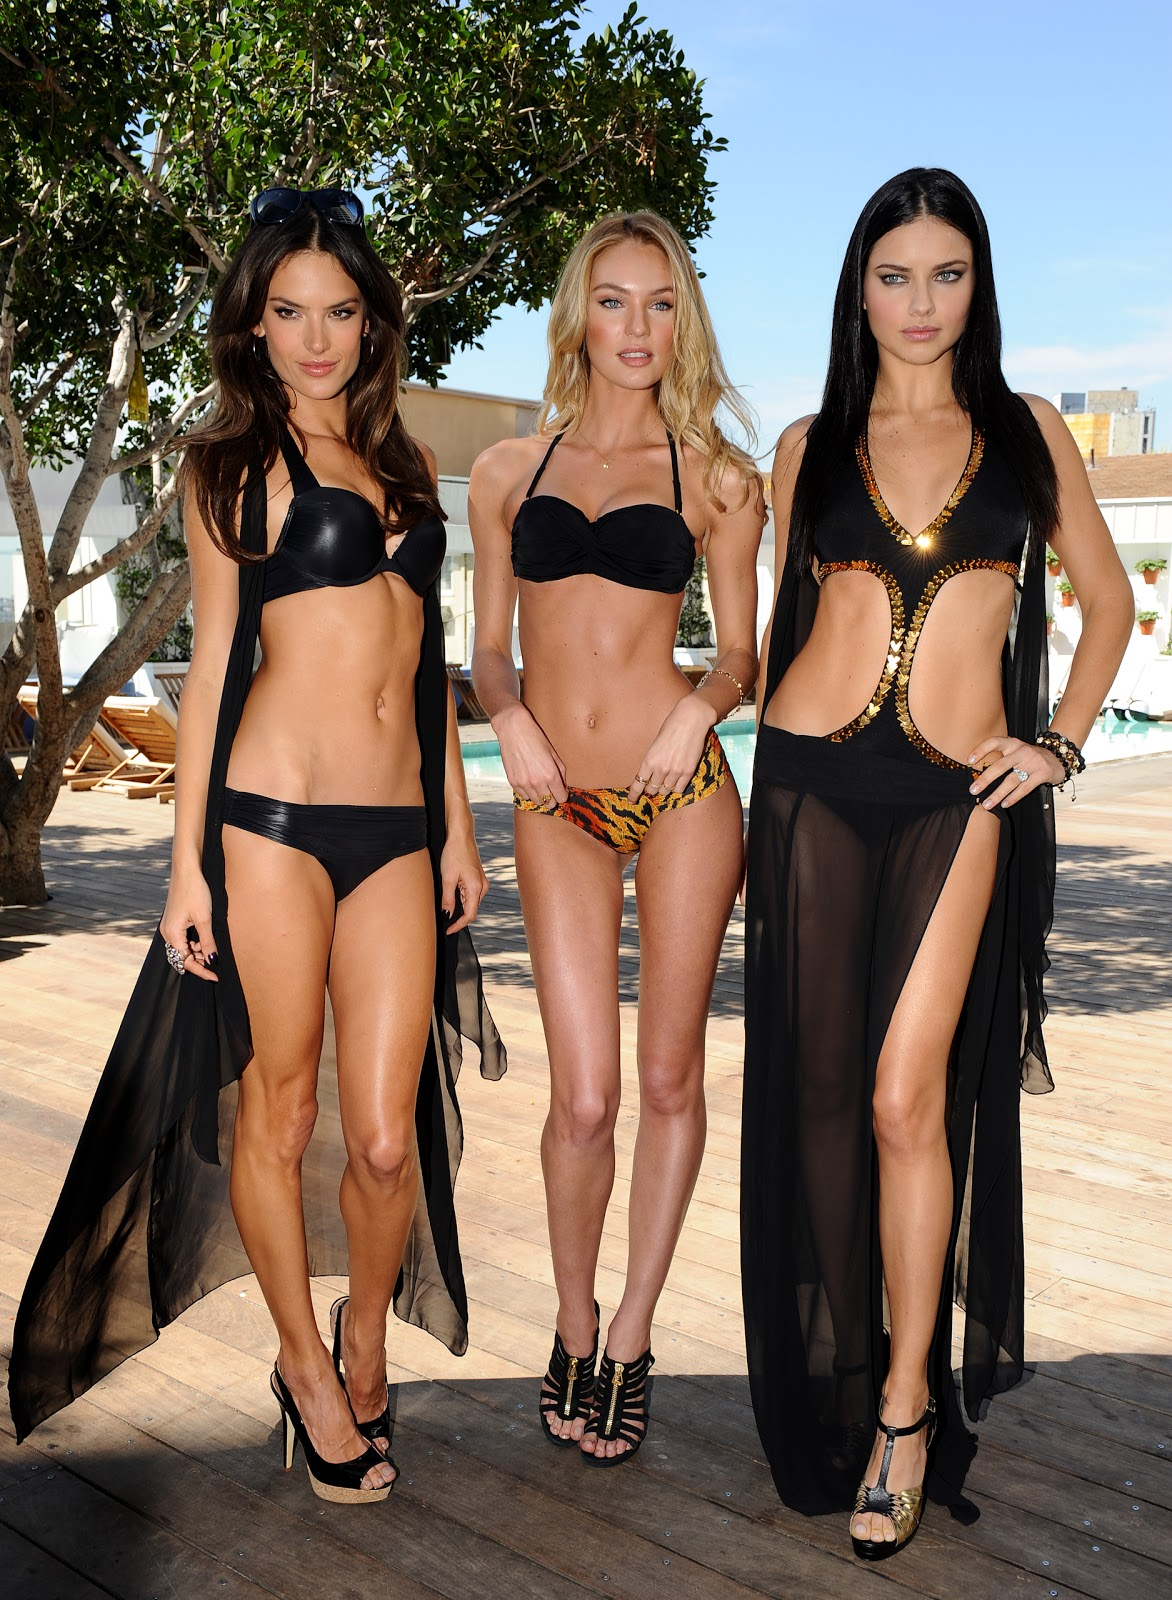 http://4.bp.blogspot.com/-v3-fnvgCu4E/TZPfaqhidWI/AAAAAAAAEqE/36iTzsZhWAE/s1600/13779_Victorias_Secret_Models_SWIM_Collection_2011_Launch_J0001_023_122_209lo.jpg